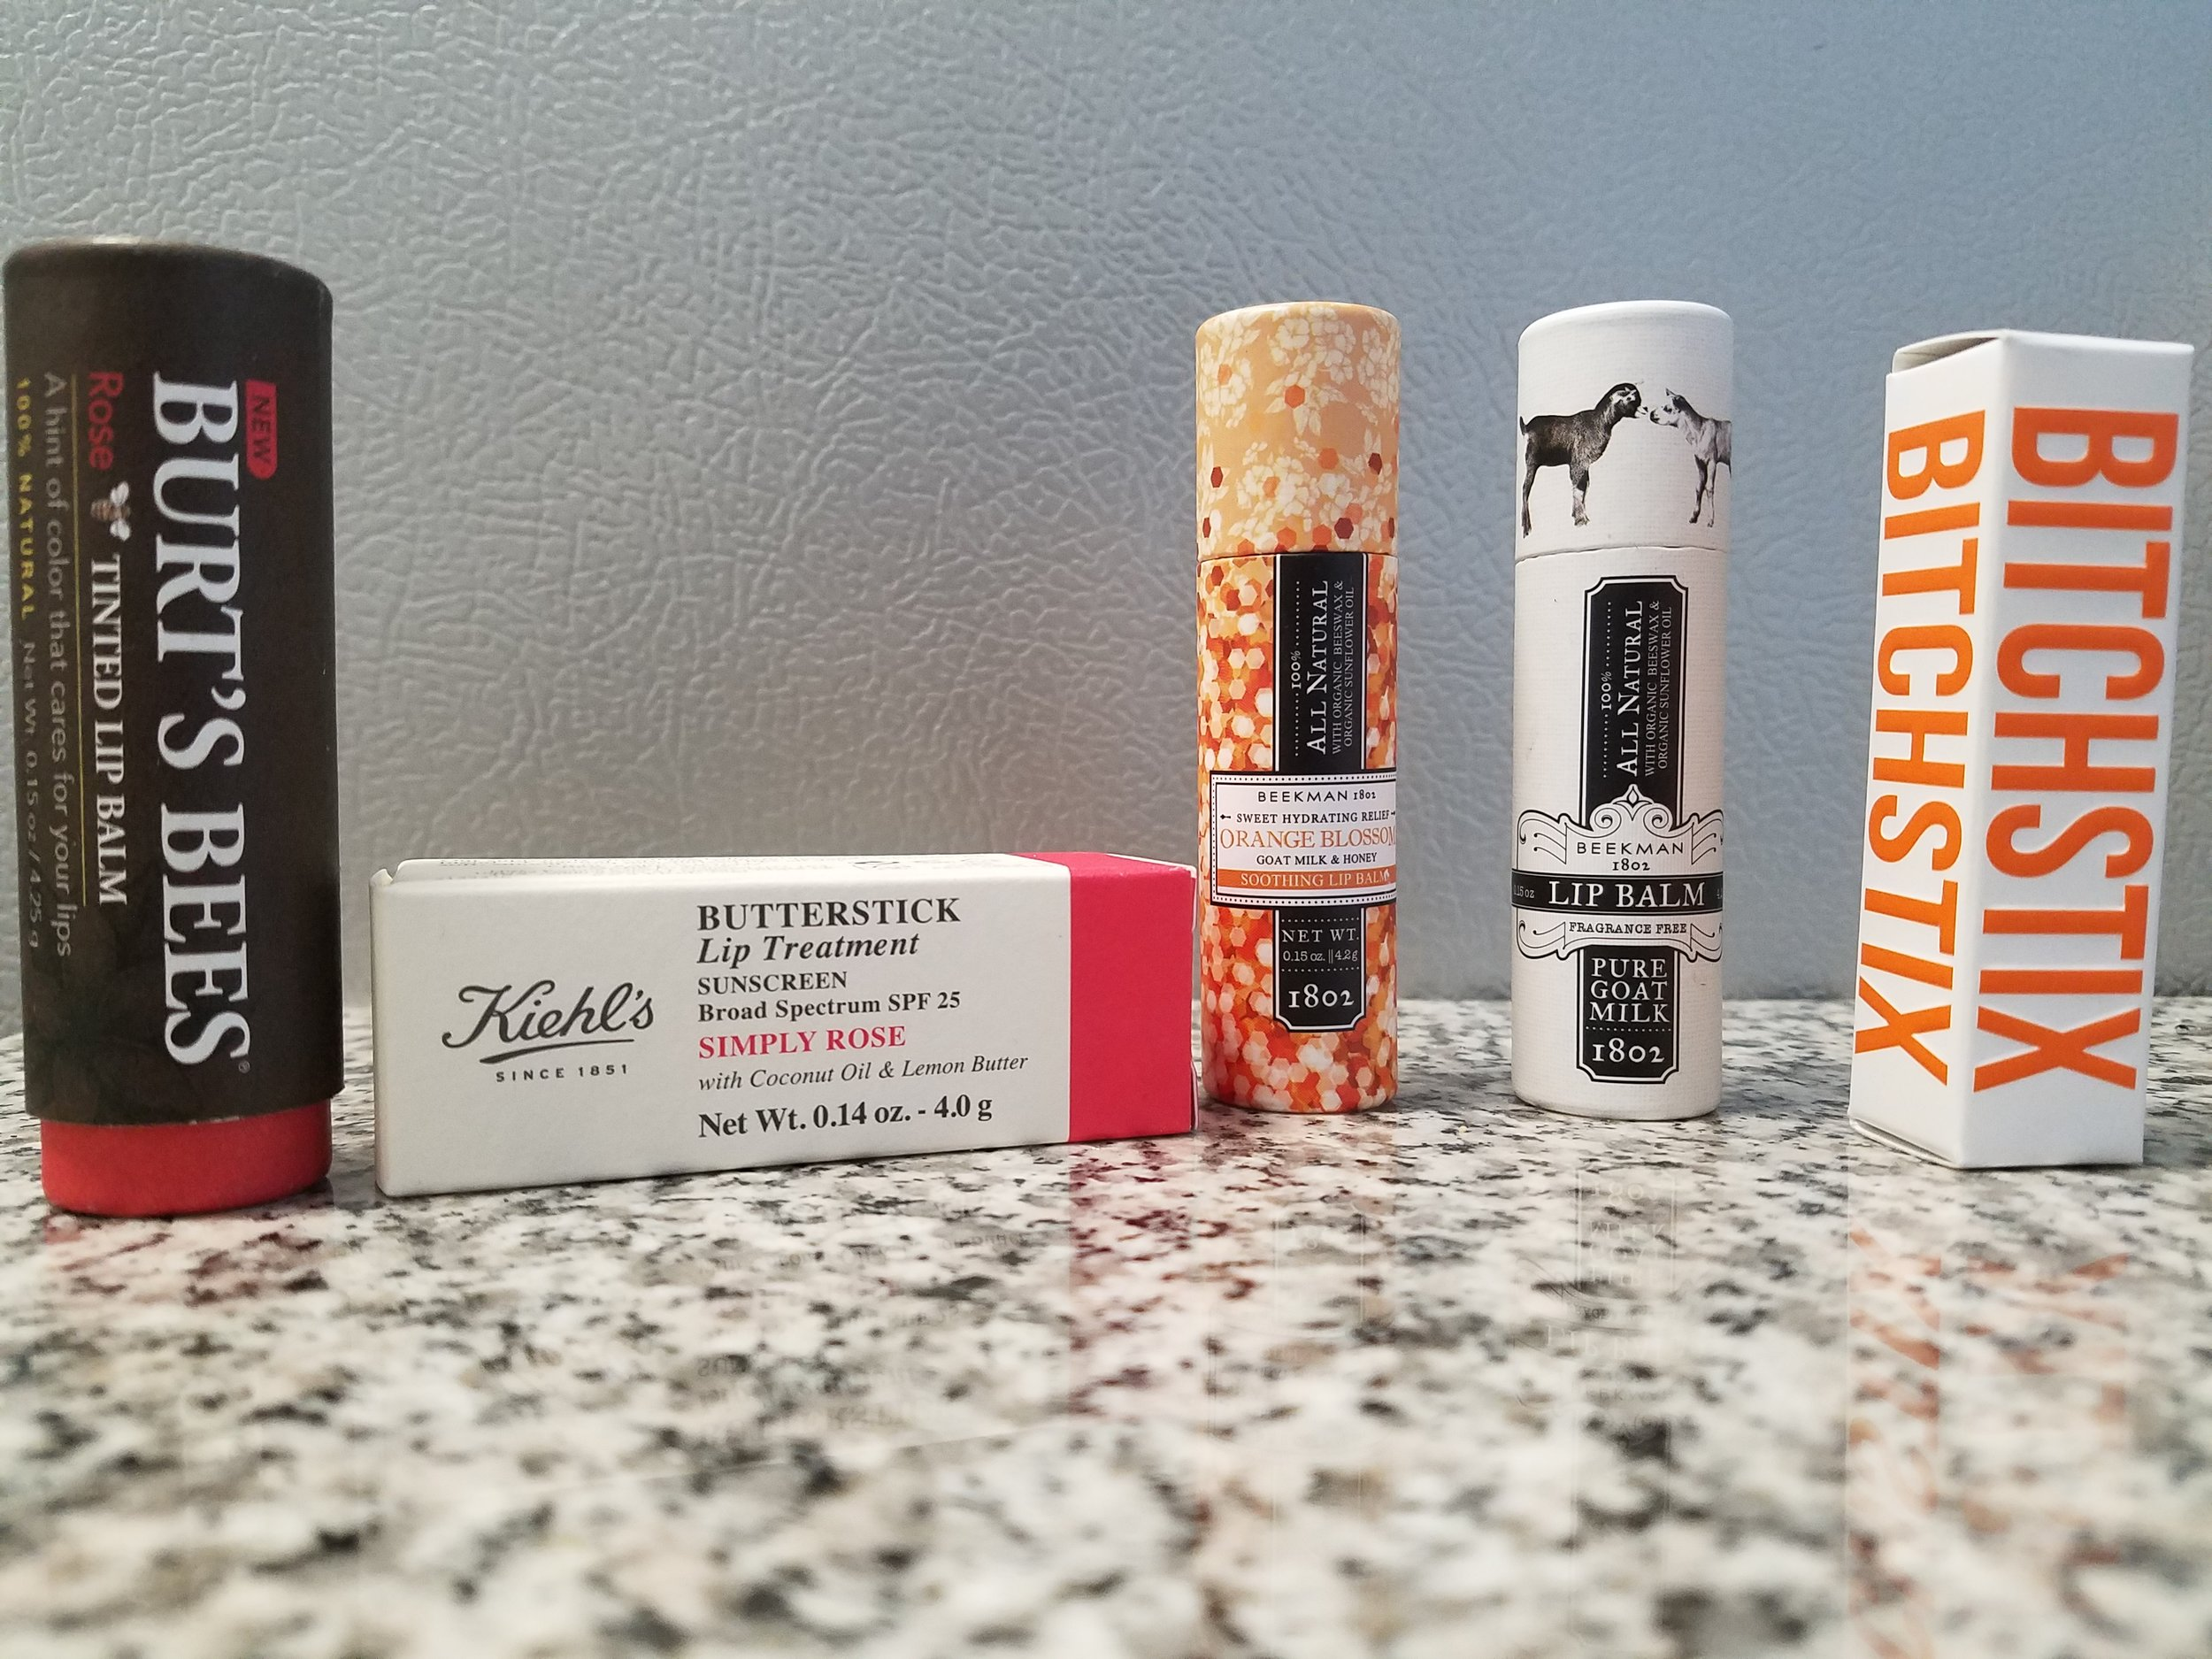 From left to right: Burt's Bees Rose tinted lip balm SPF 25 - Kiehl's Simply Rose butterstick lip treatment - Beekman 1802 All Natural Honey + Orange Blossom and Pure Goat Milk lip balms - Bitch Stix Citrus Orange lip balm SPF 30